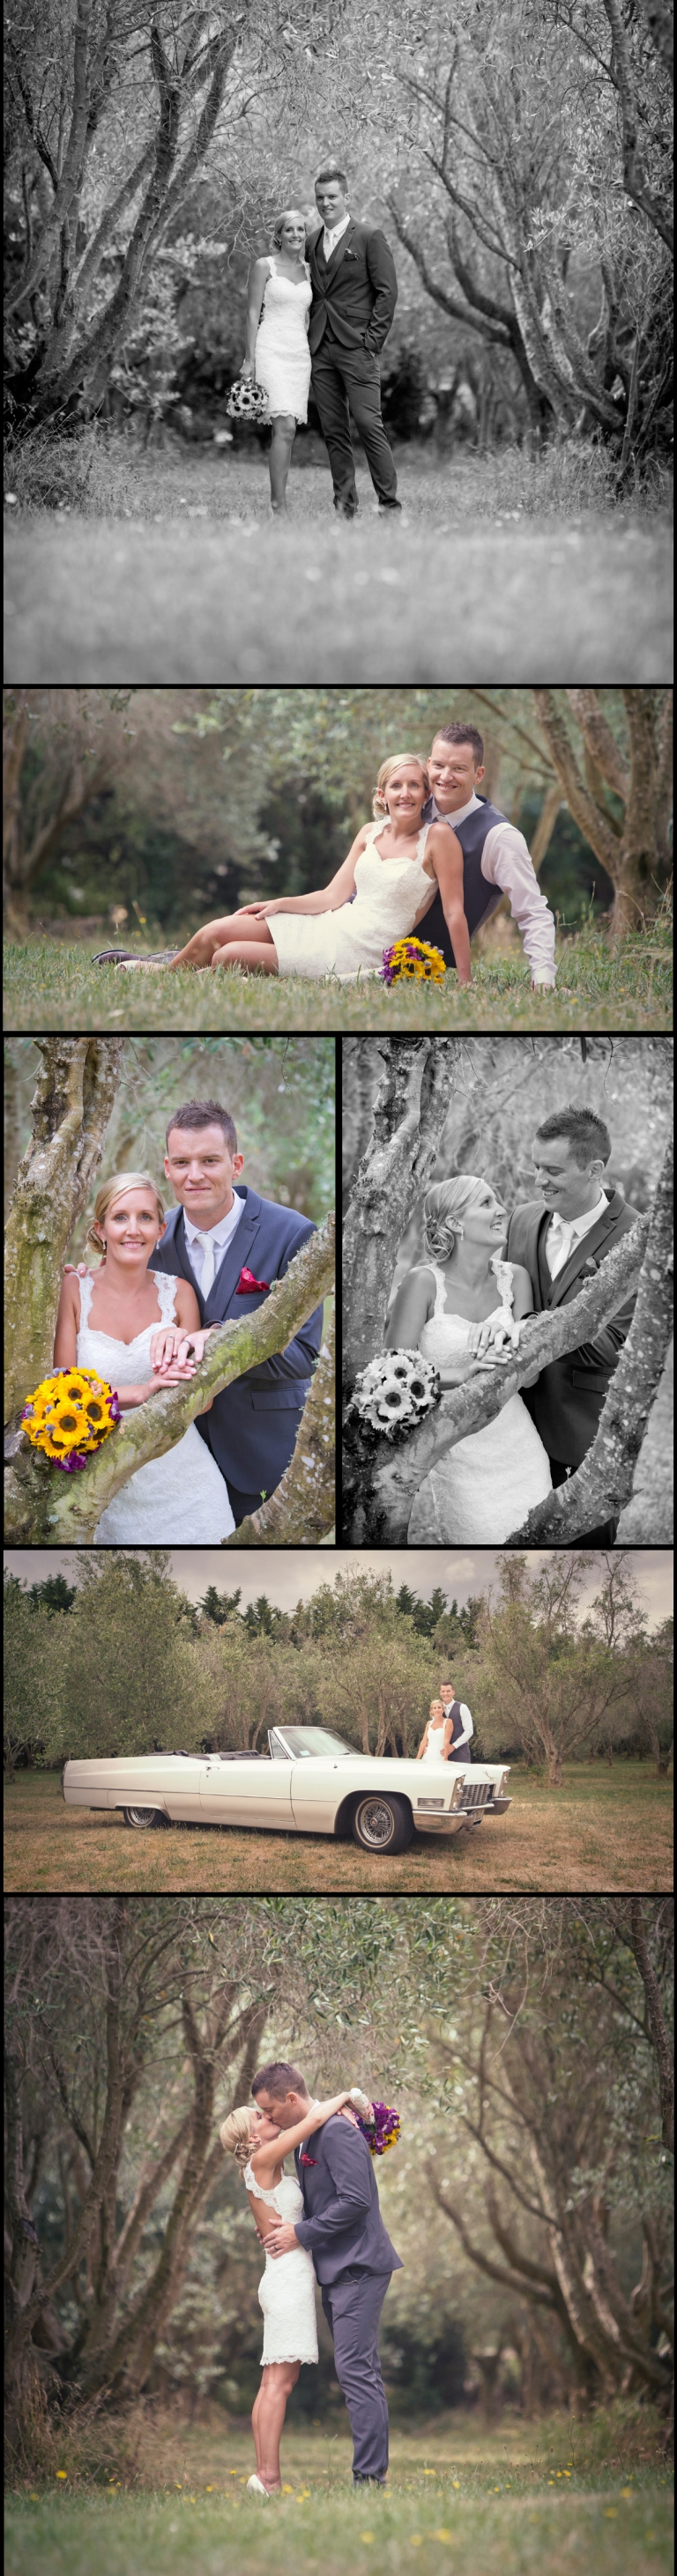 Troy and Heather 04 - Kevin Bills Photography Troy and Heather